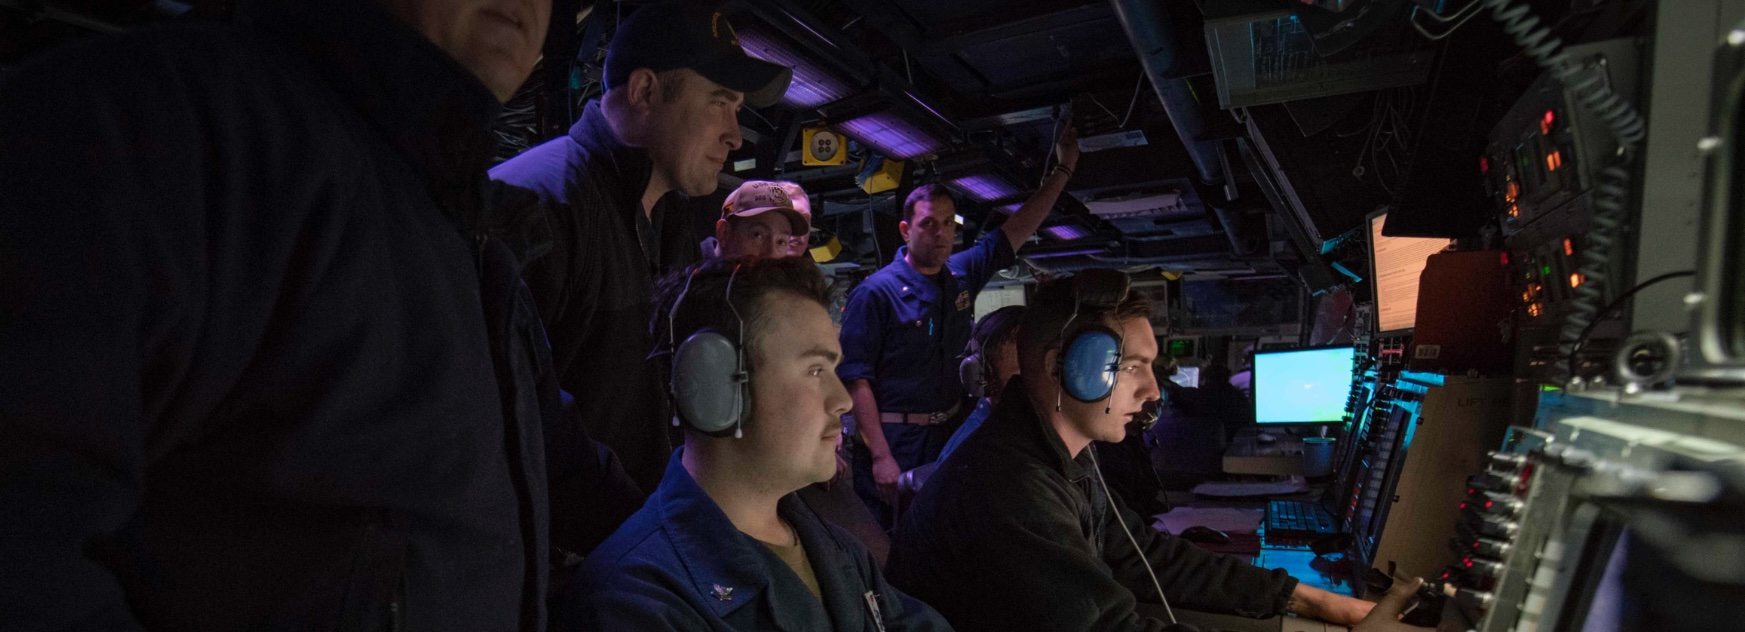 u.s. navy unit monitoring computer systems